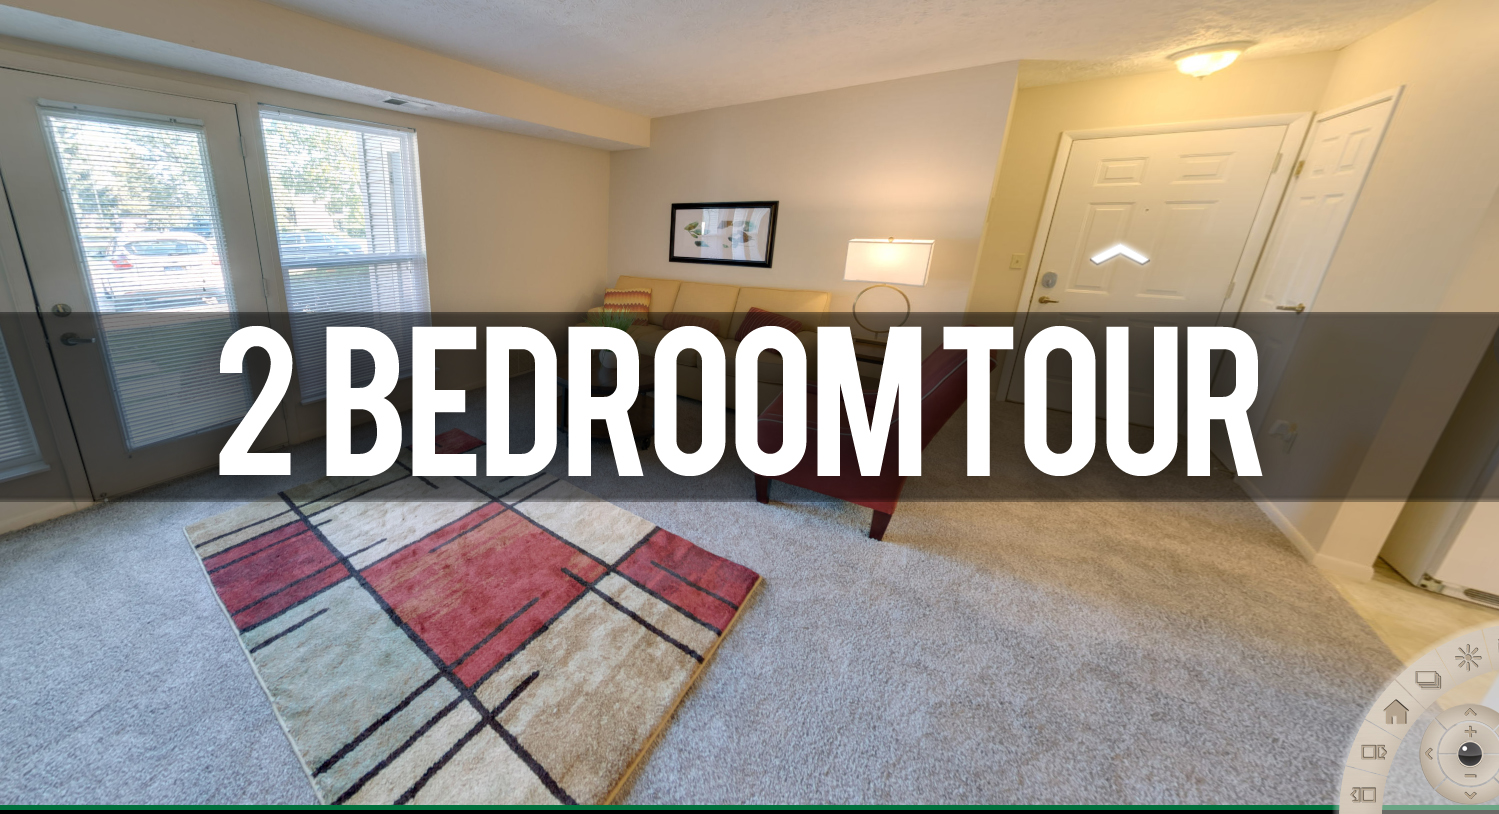 Virtual Tour of 2 Bedroom at Pine Lane Estates Apartments